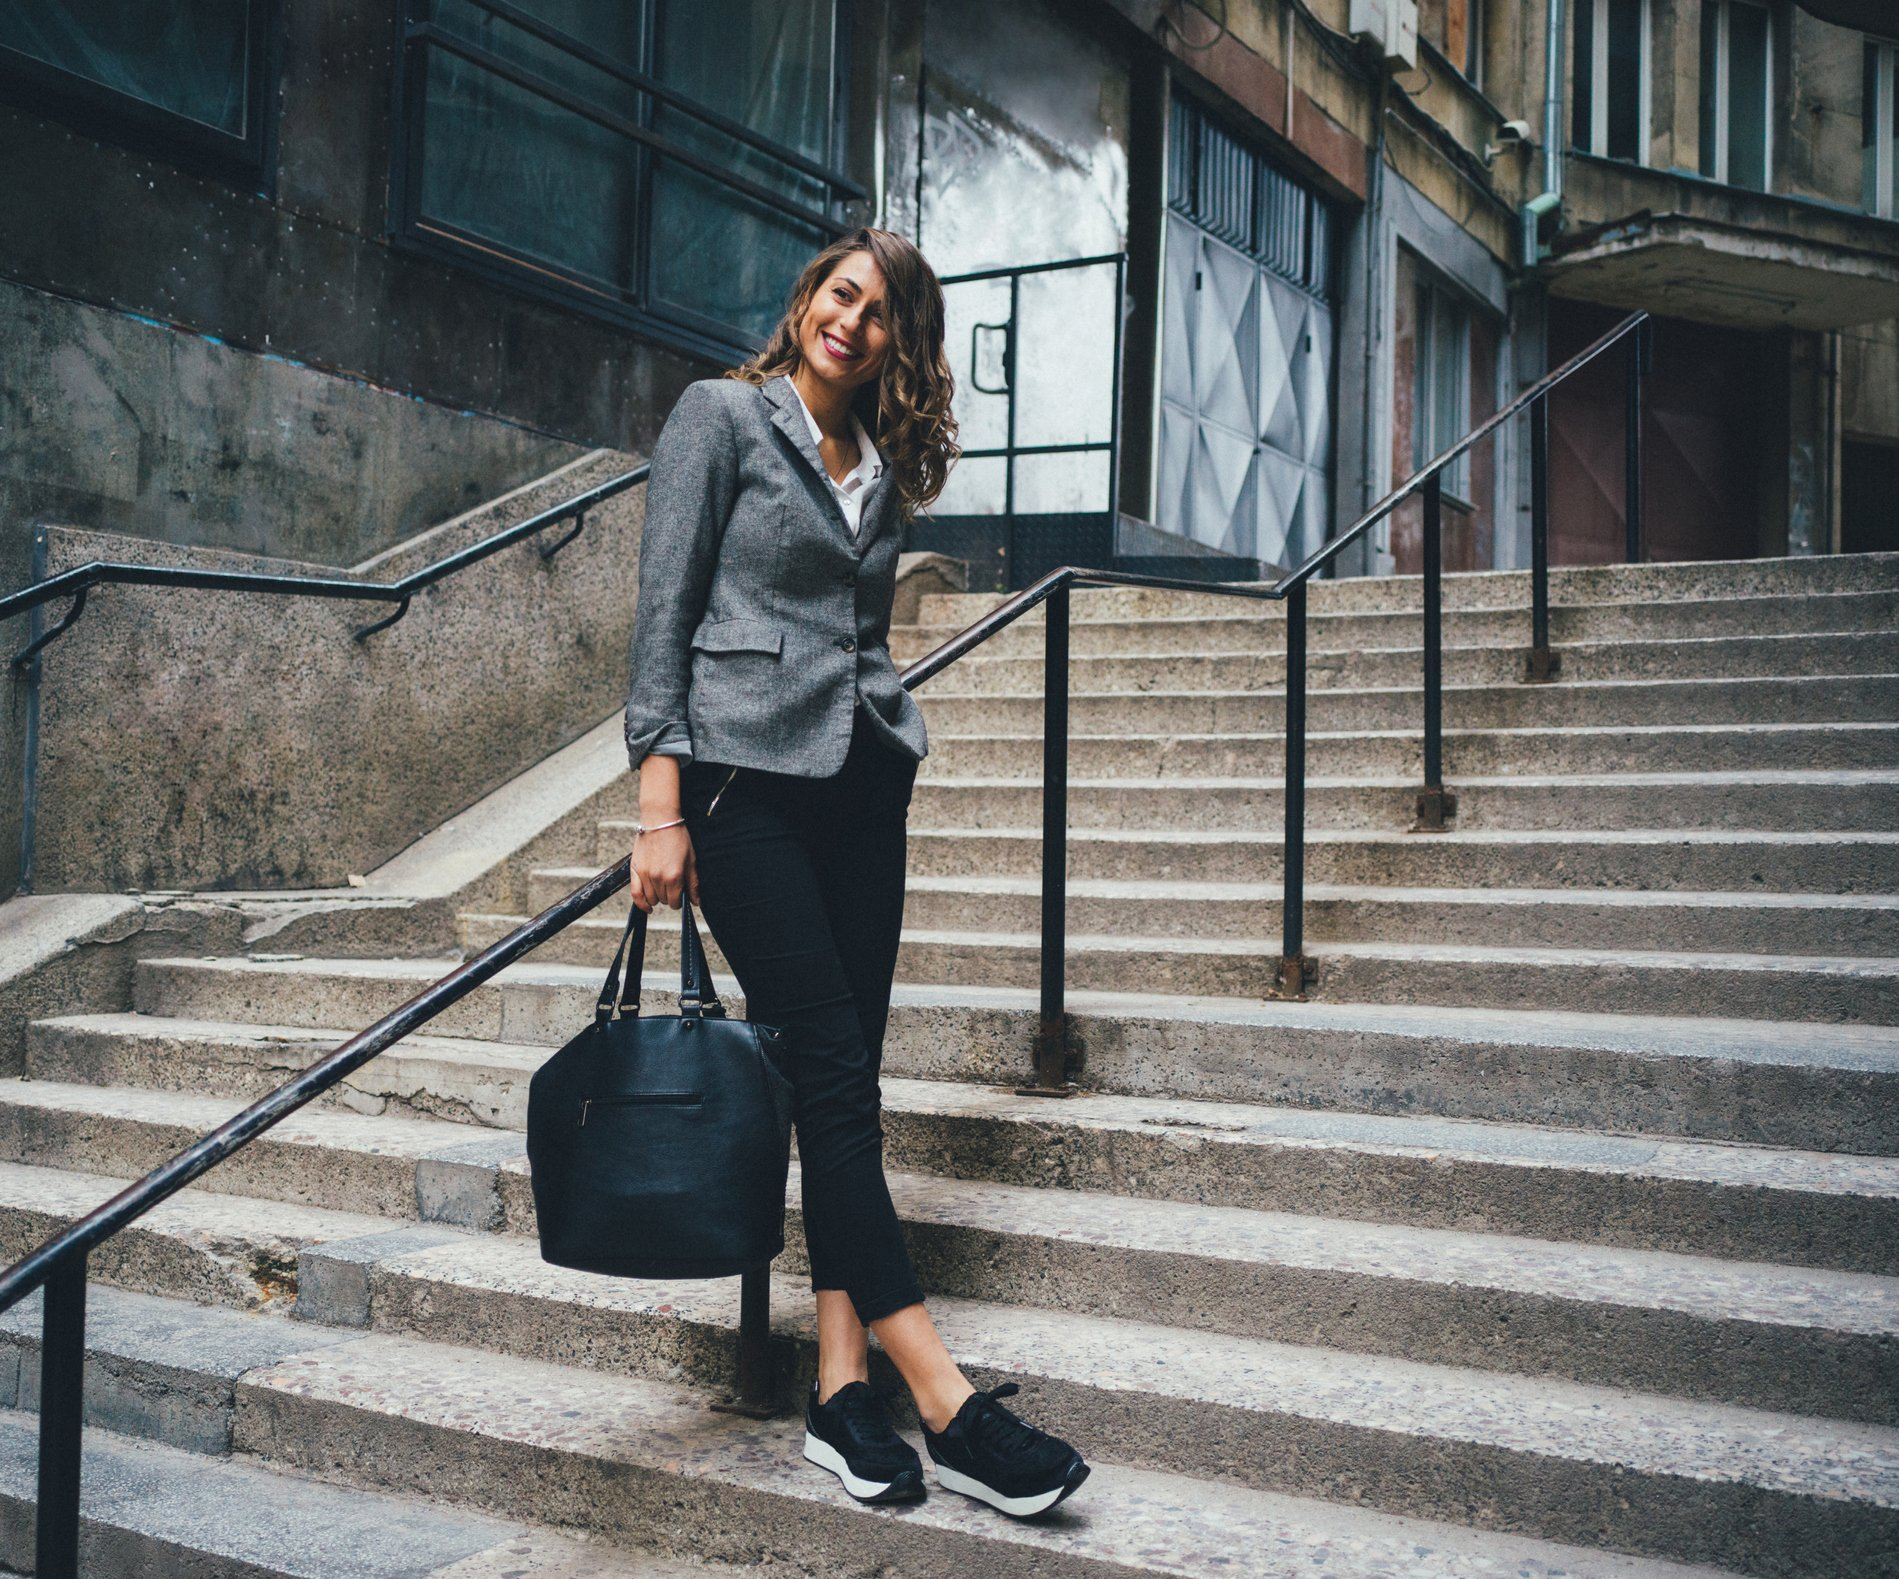 Woman standing on the stairs in the city.